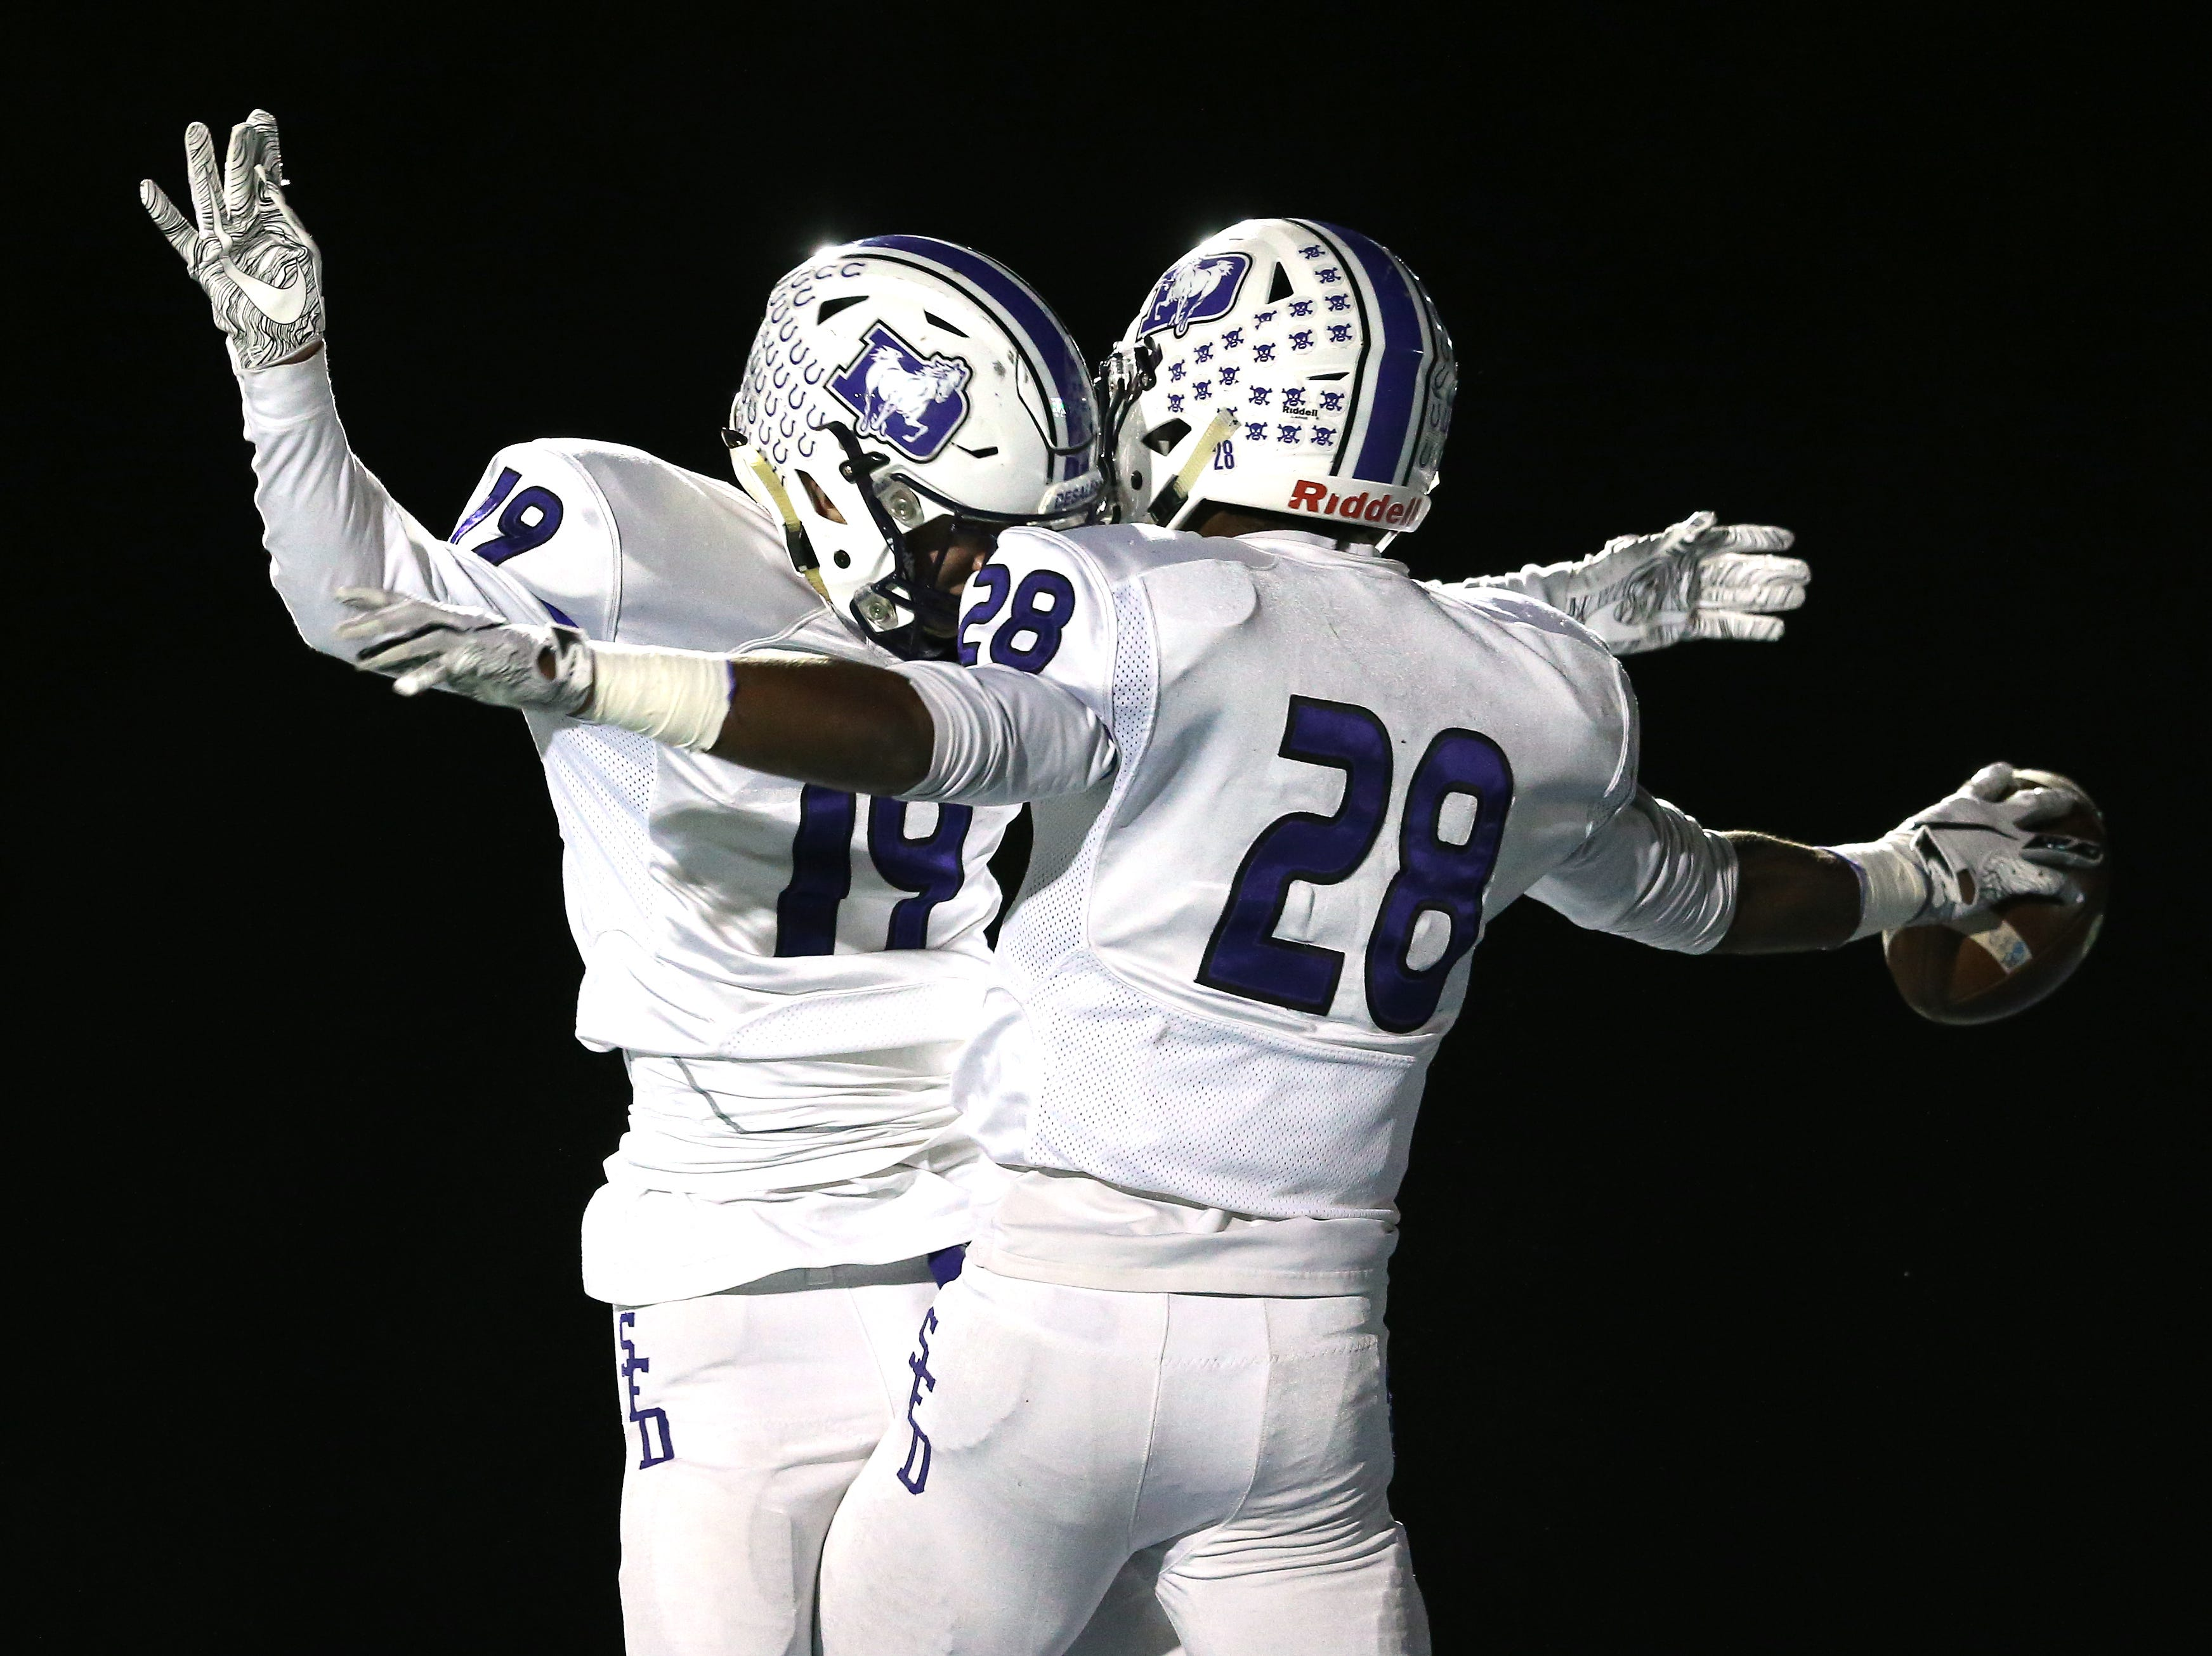 St. Francis de Sales Stallions running back Quintell Quinn (28), right, wide receiver Mason Rickens (19), left, celebrate a touchdown in the first quarter during a high school football game between St. Francis de Sales and Winton Woods, Friday, Oct. 19, 2018, at Winton Woods High School in Forest Park, Ohio.